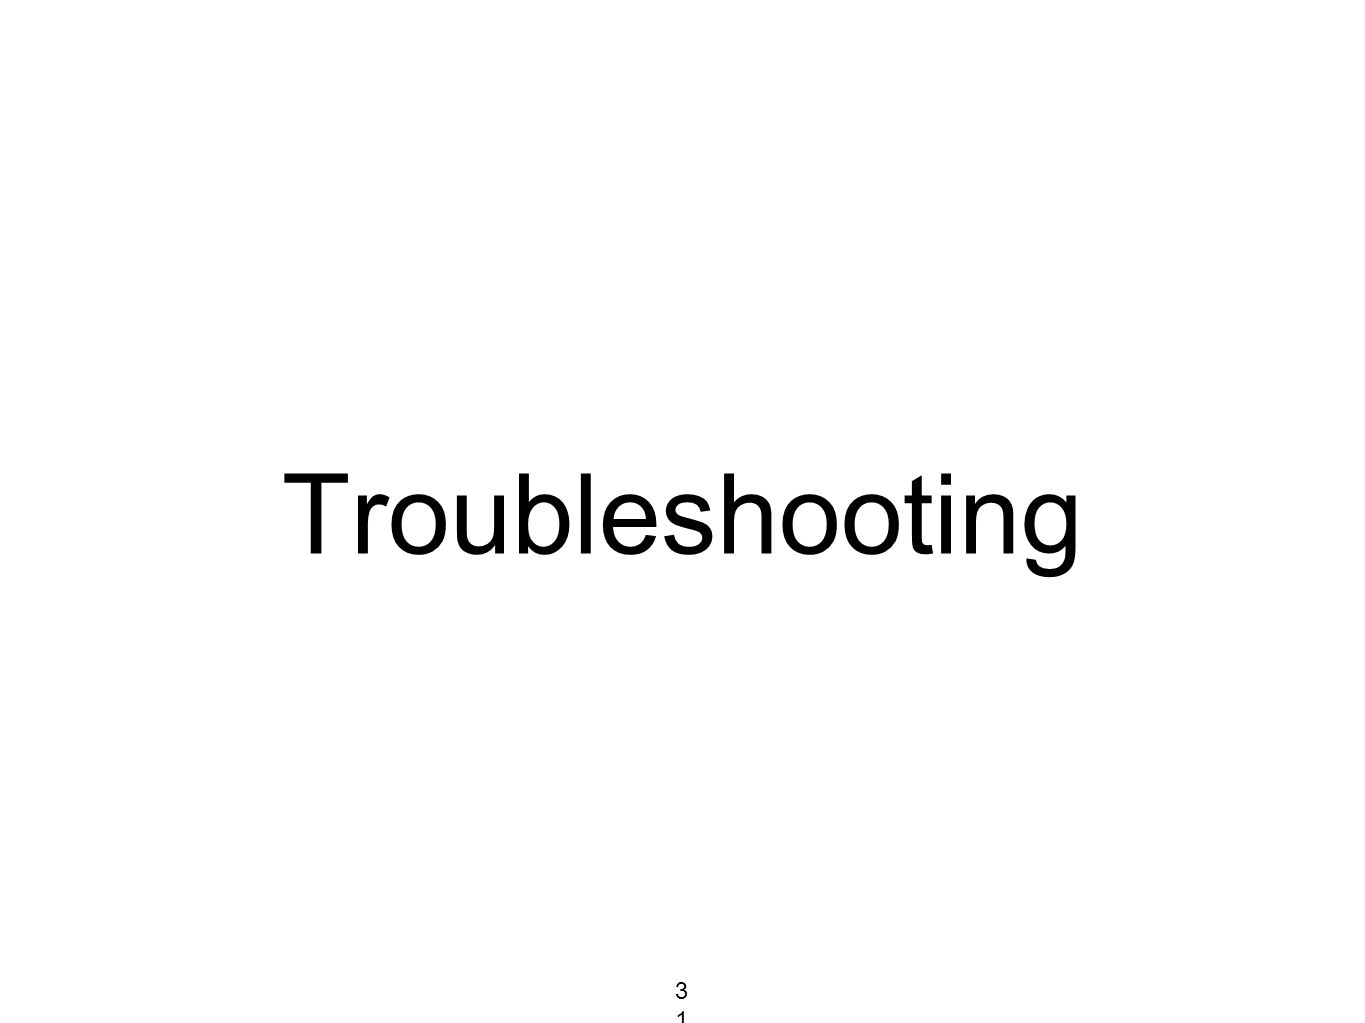 Troubleshooting 312312312